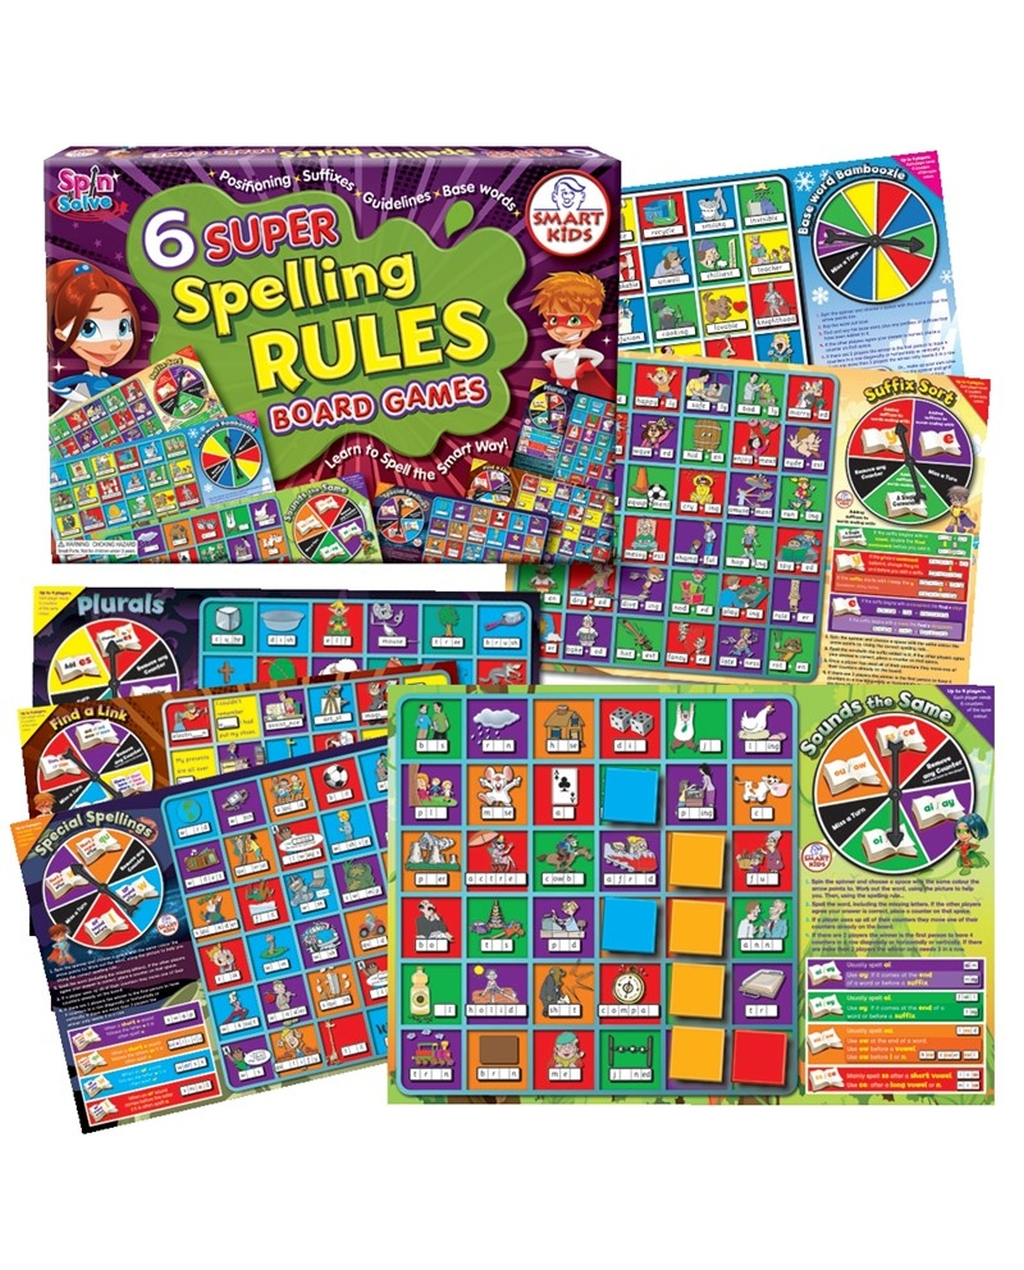 6 Super Spelling Rules Games